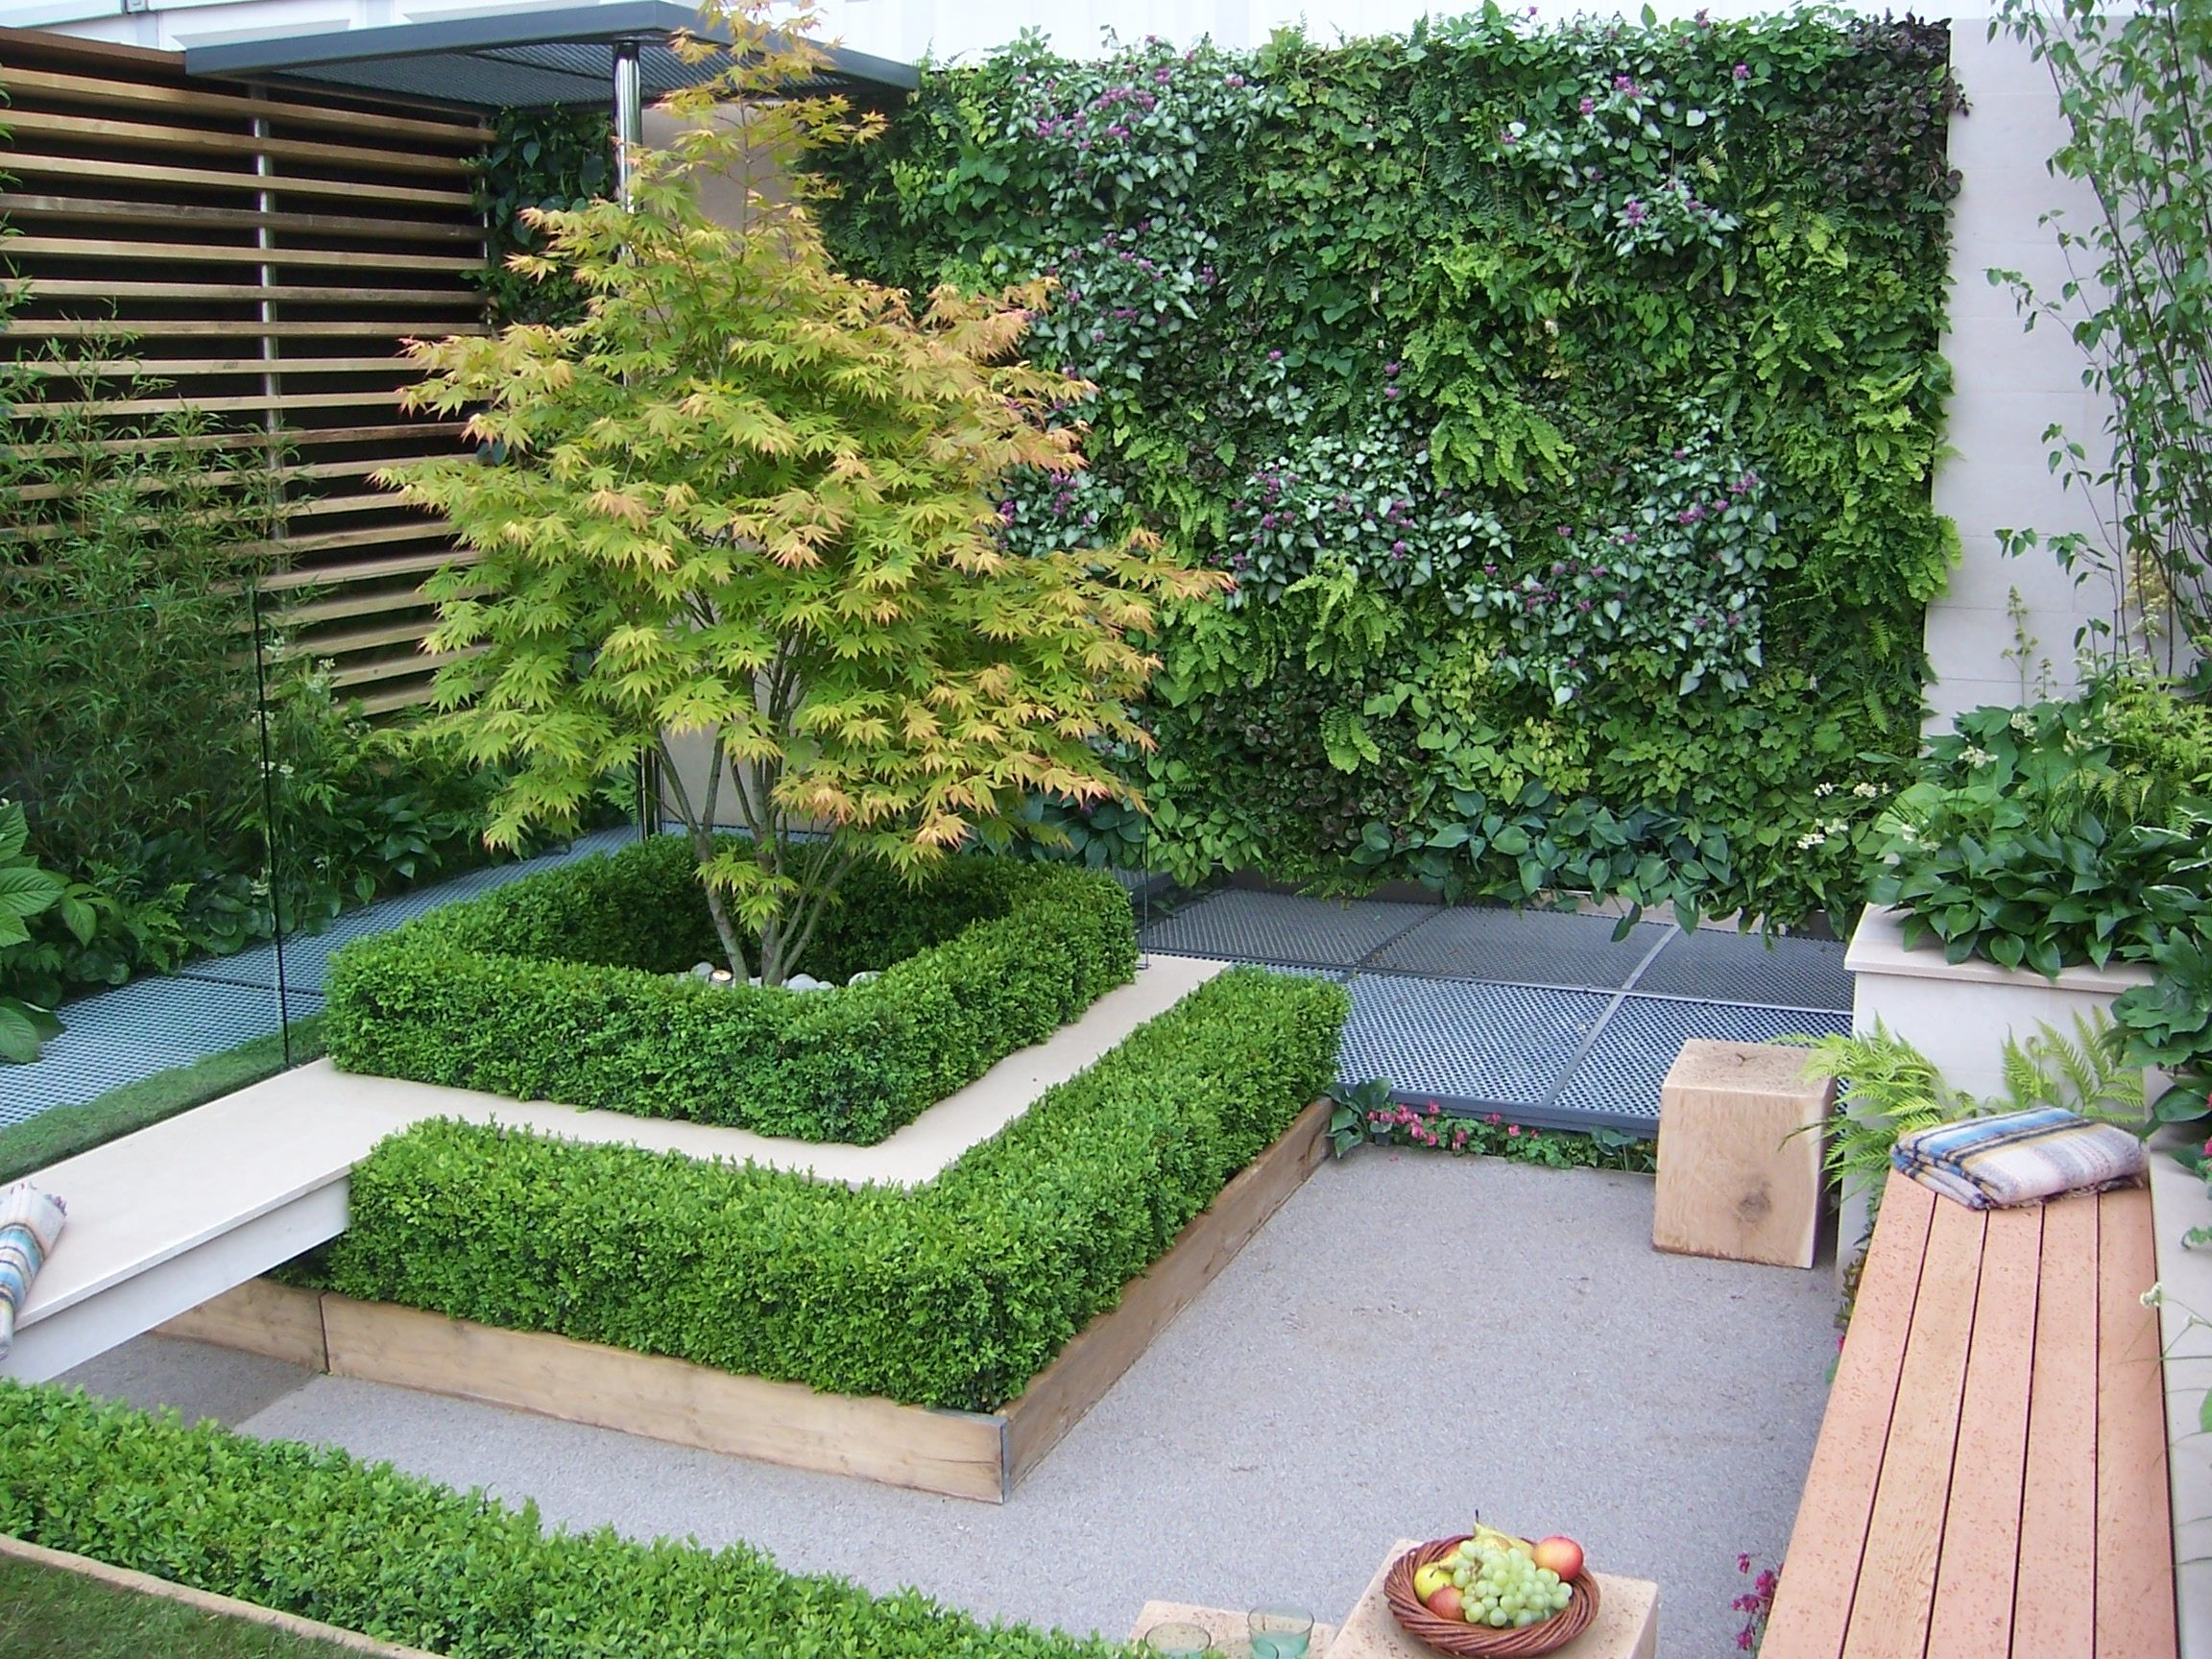 show+gardens |  inner-city garden. this garden won a gold medal